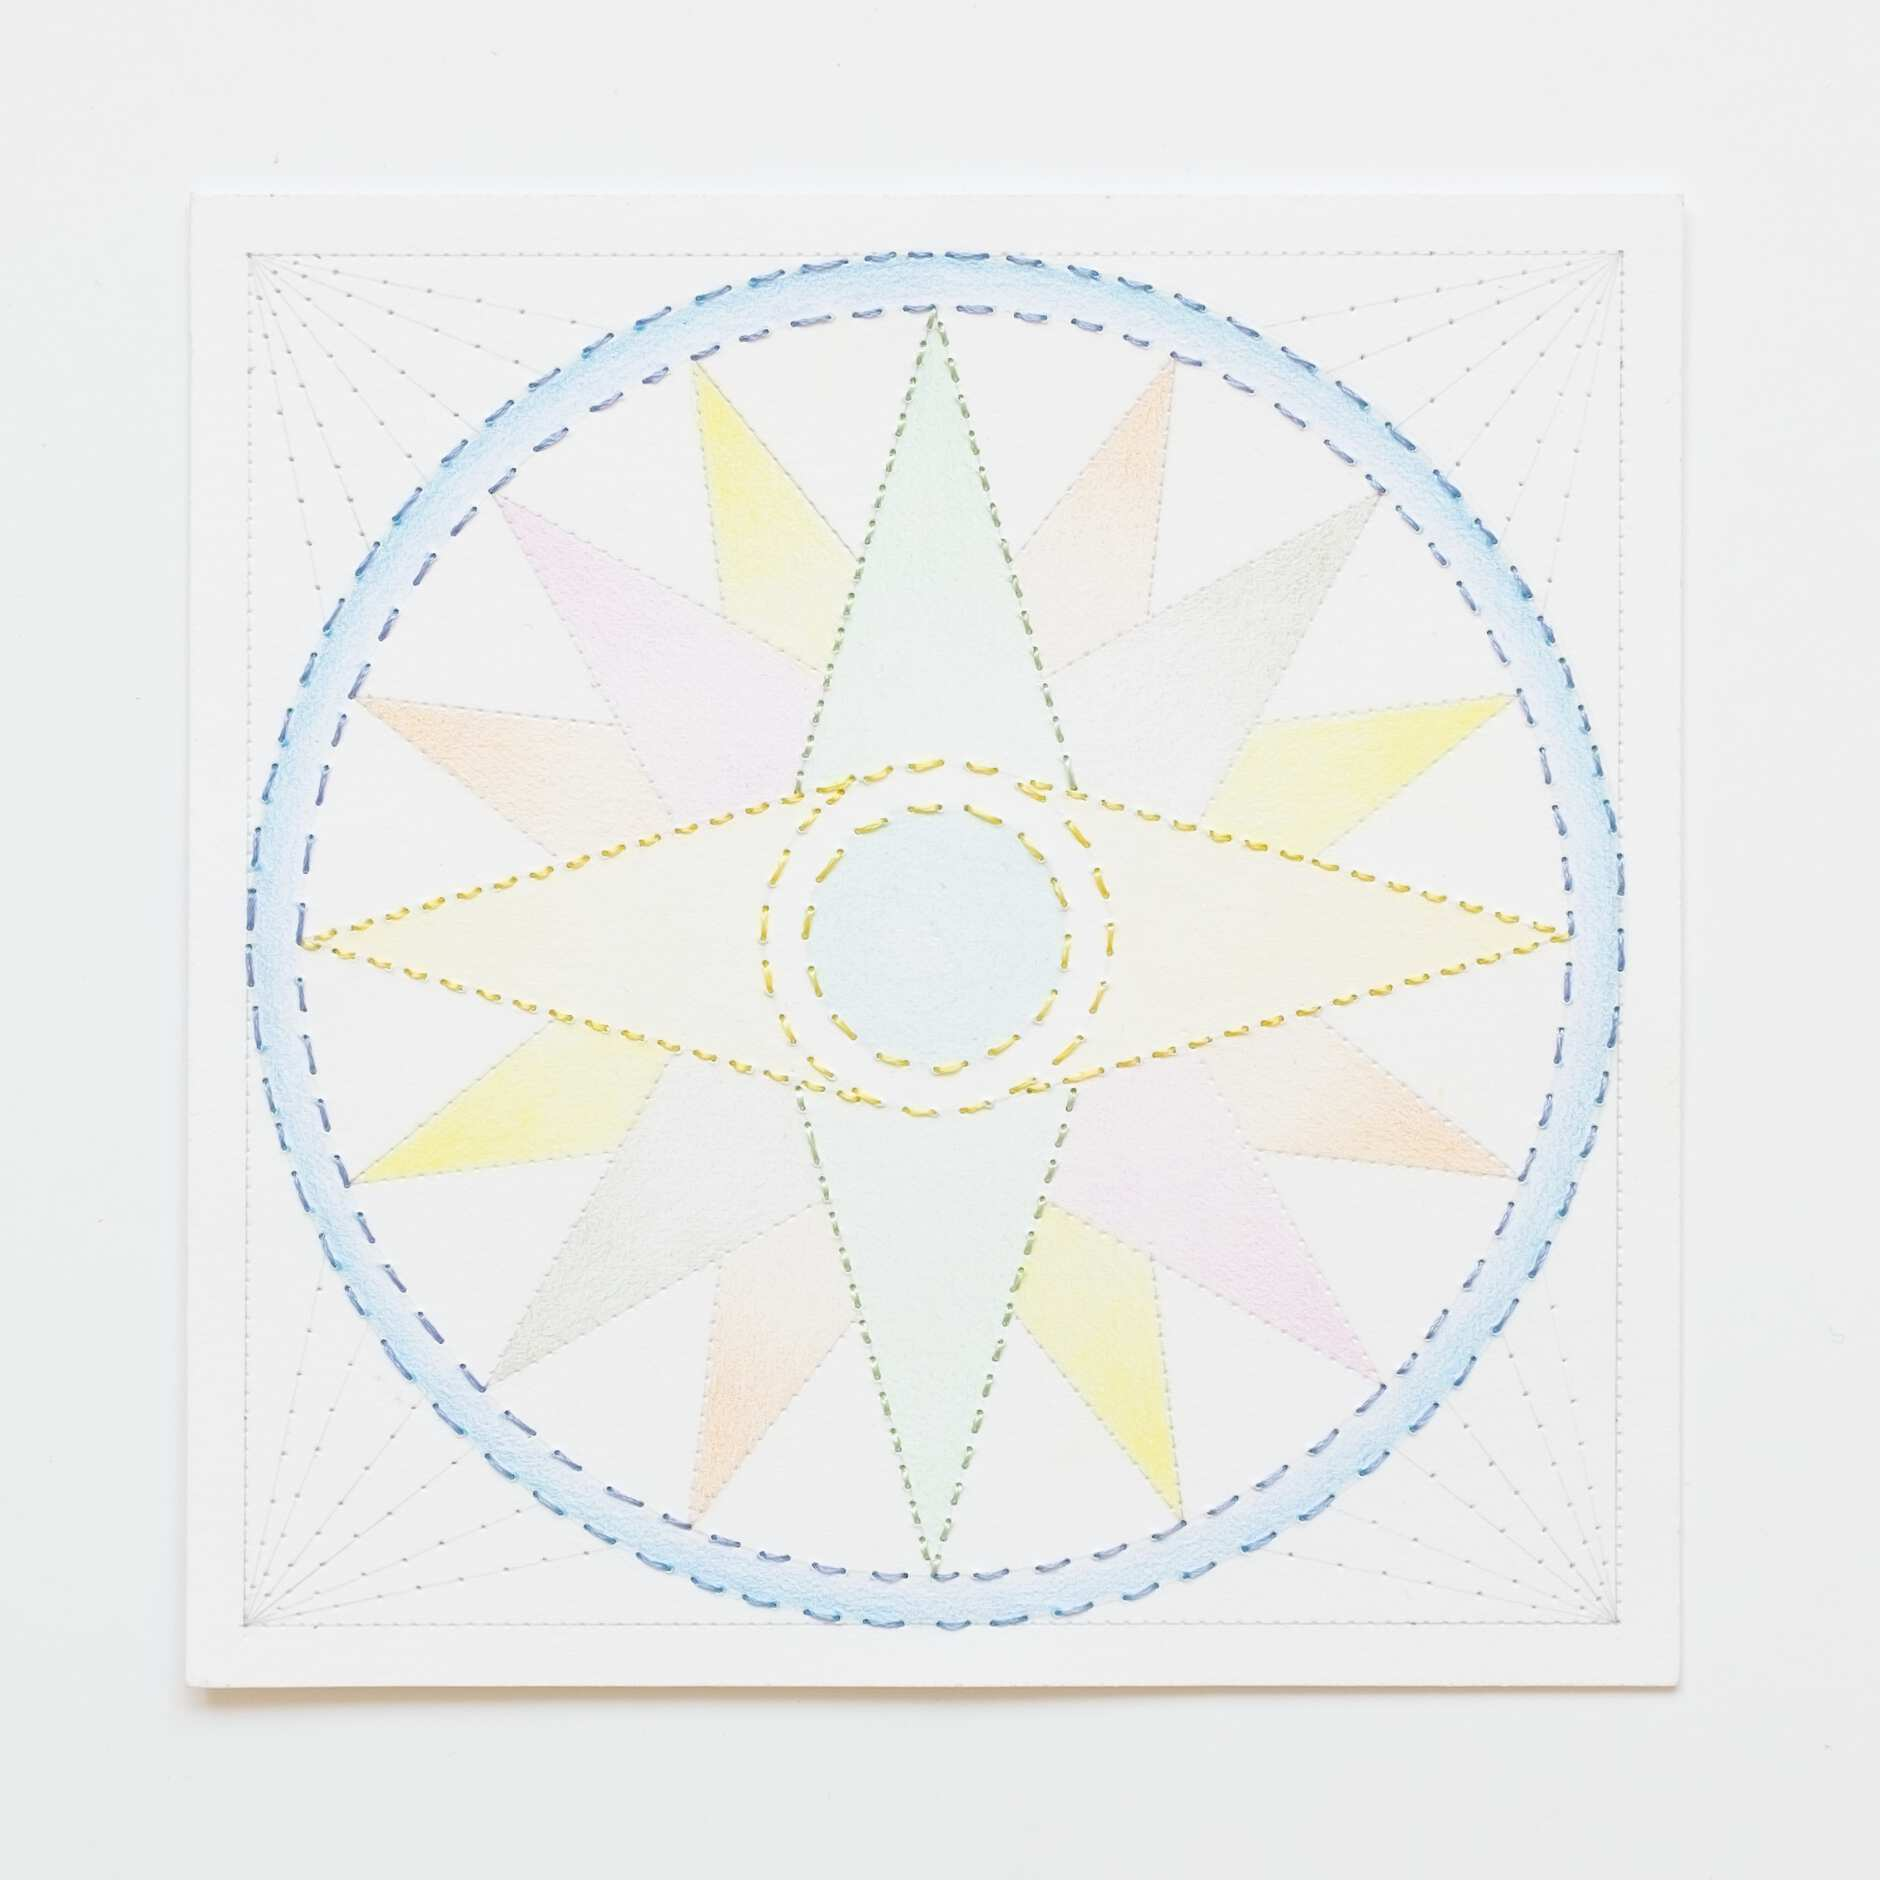 Quilted Composition [white // compass], Hand-embroidered silk thread, pencil, and coloured pencil on paper, 2019